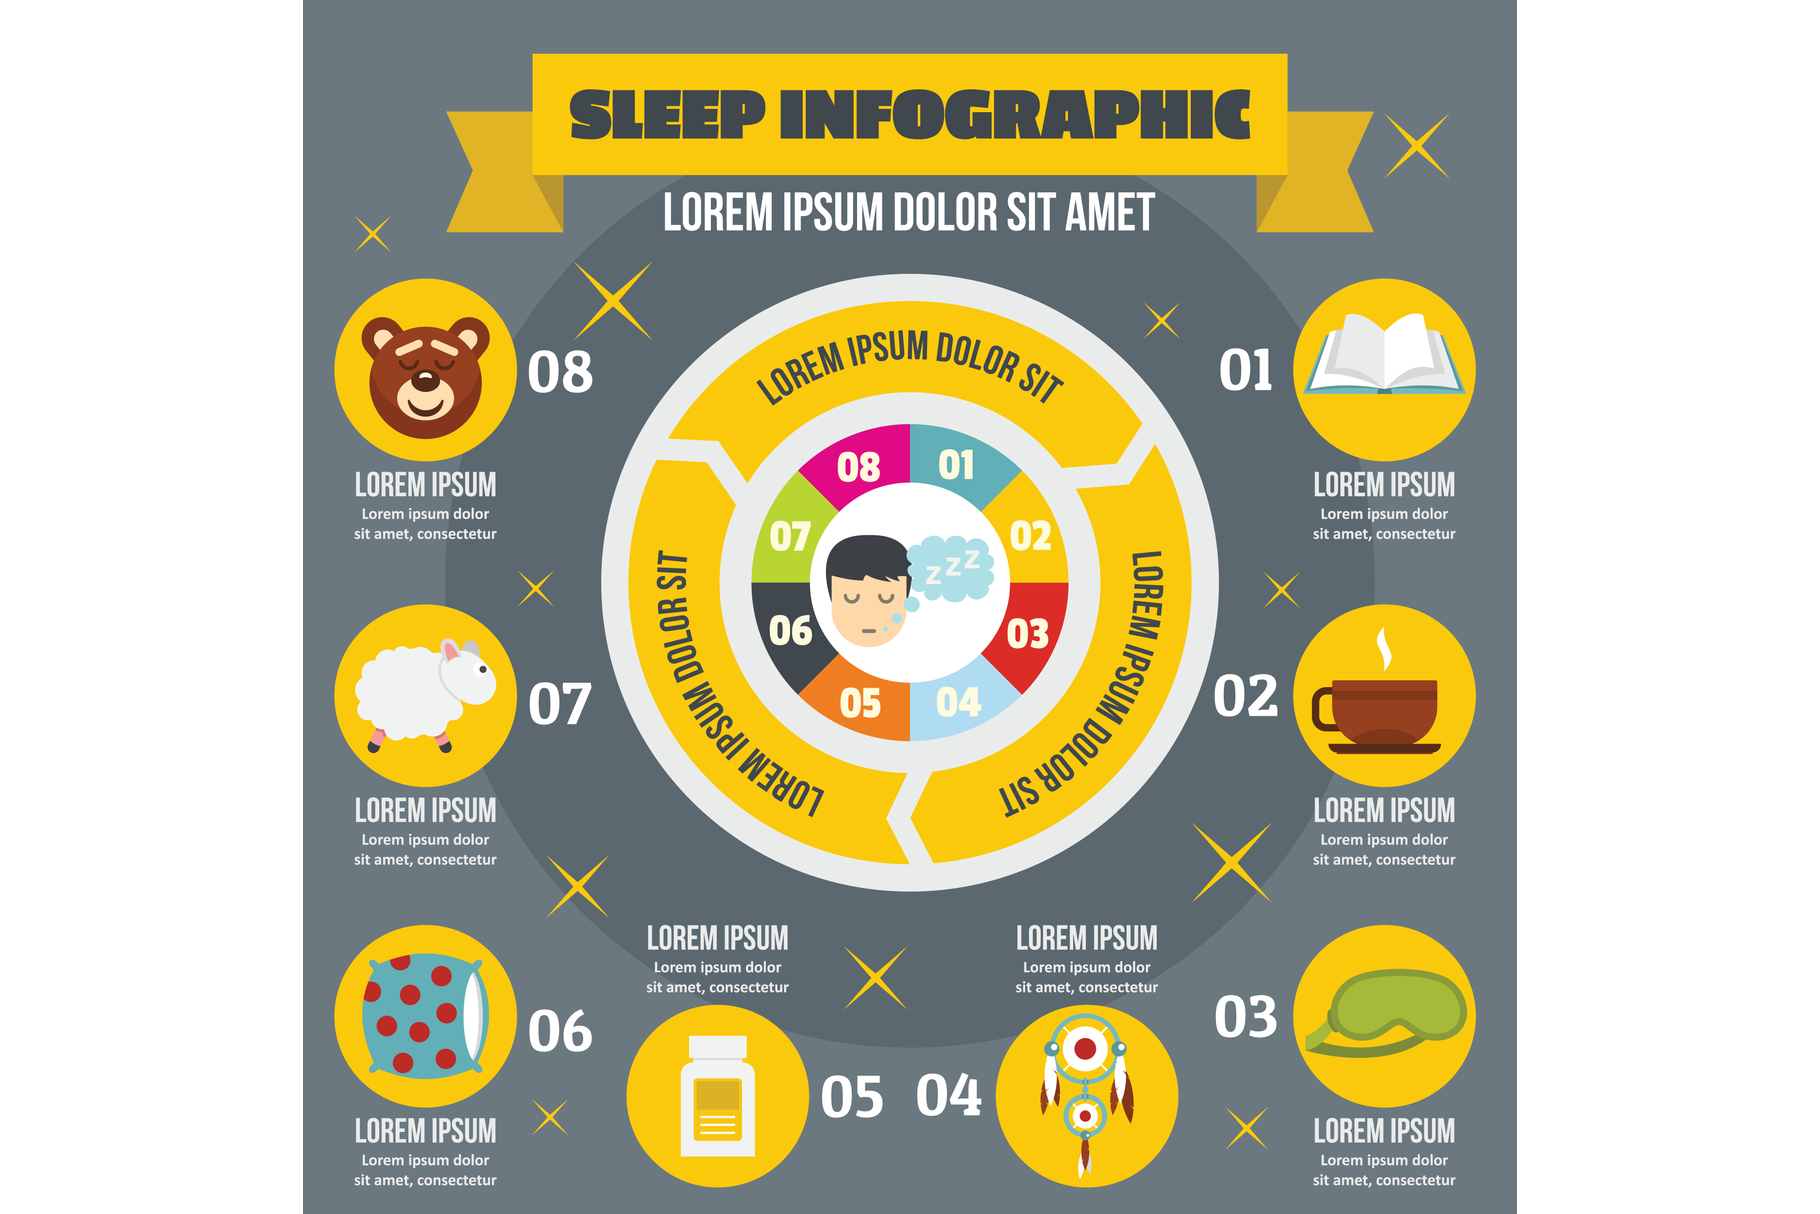 Sleep infographic concept, flat style example image 1